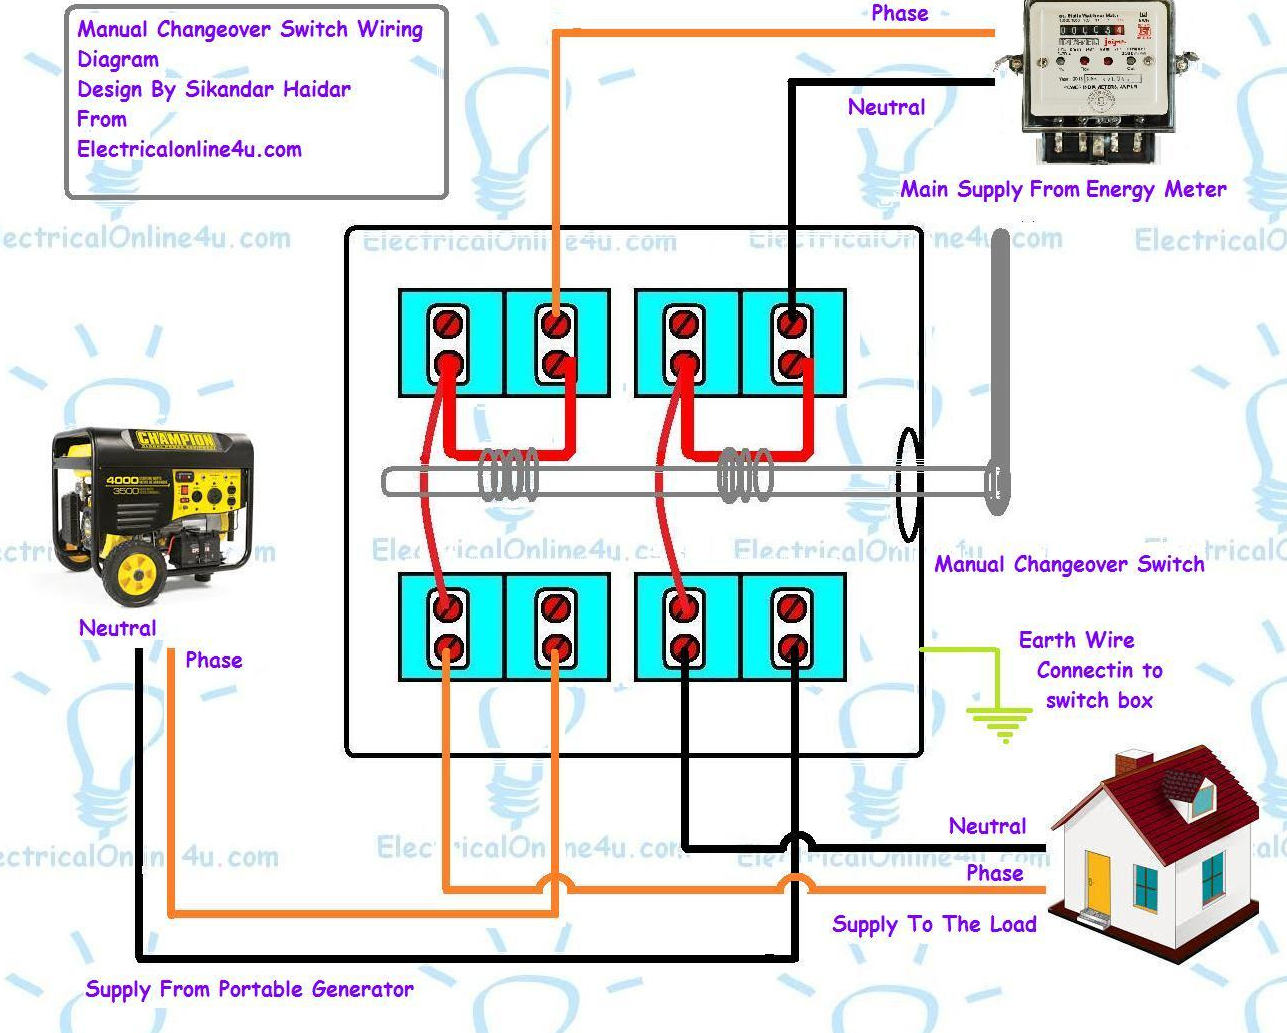 manual changeover switch wiring diagram for portable generator rh pinterest  com automatic changeover switch circuit diagram